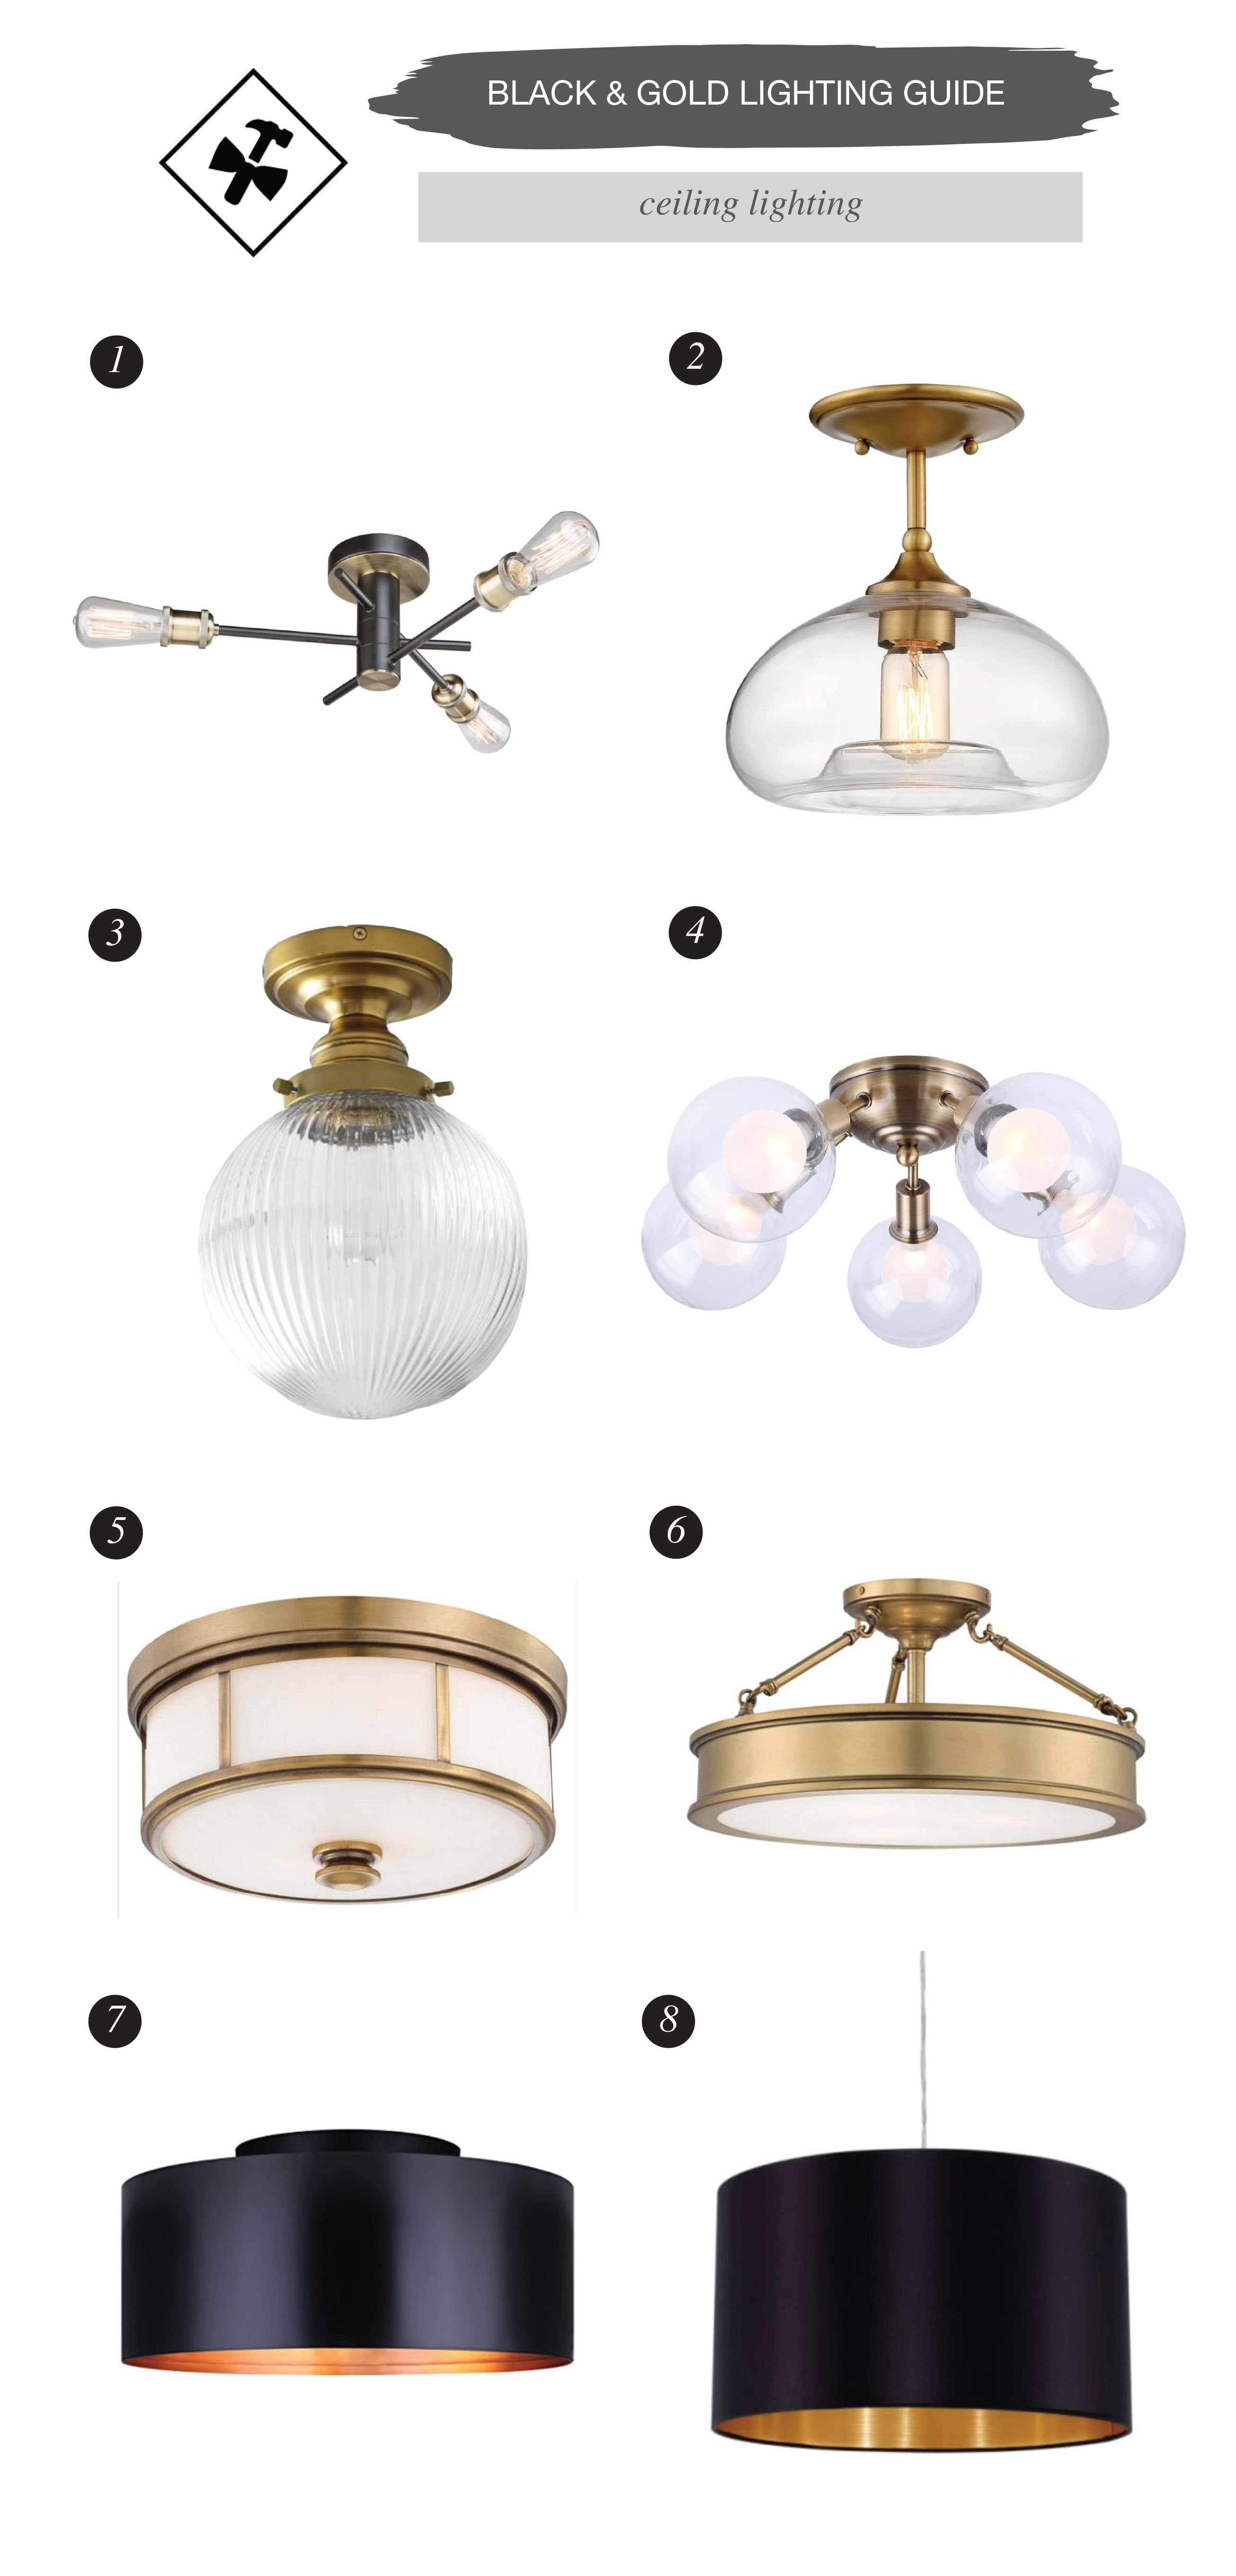 Black And Gold Light Fixture Guide 29 Amazing Options Gold Light Fixture Bathroom Ceiling Light Bathroom Light Fixtures